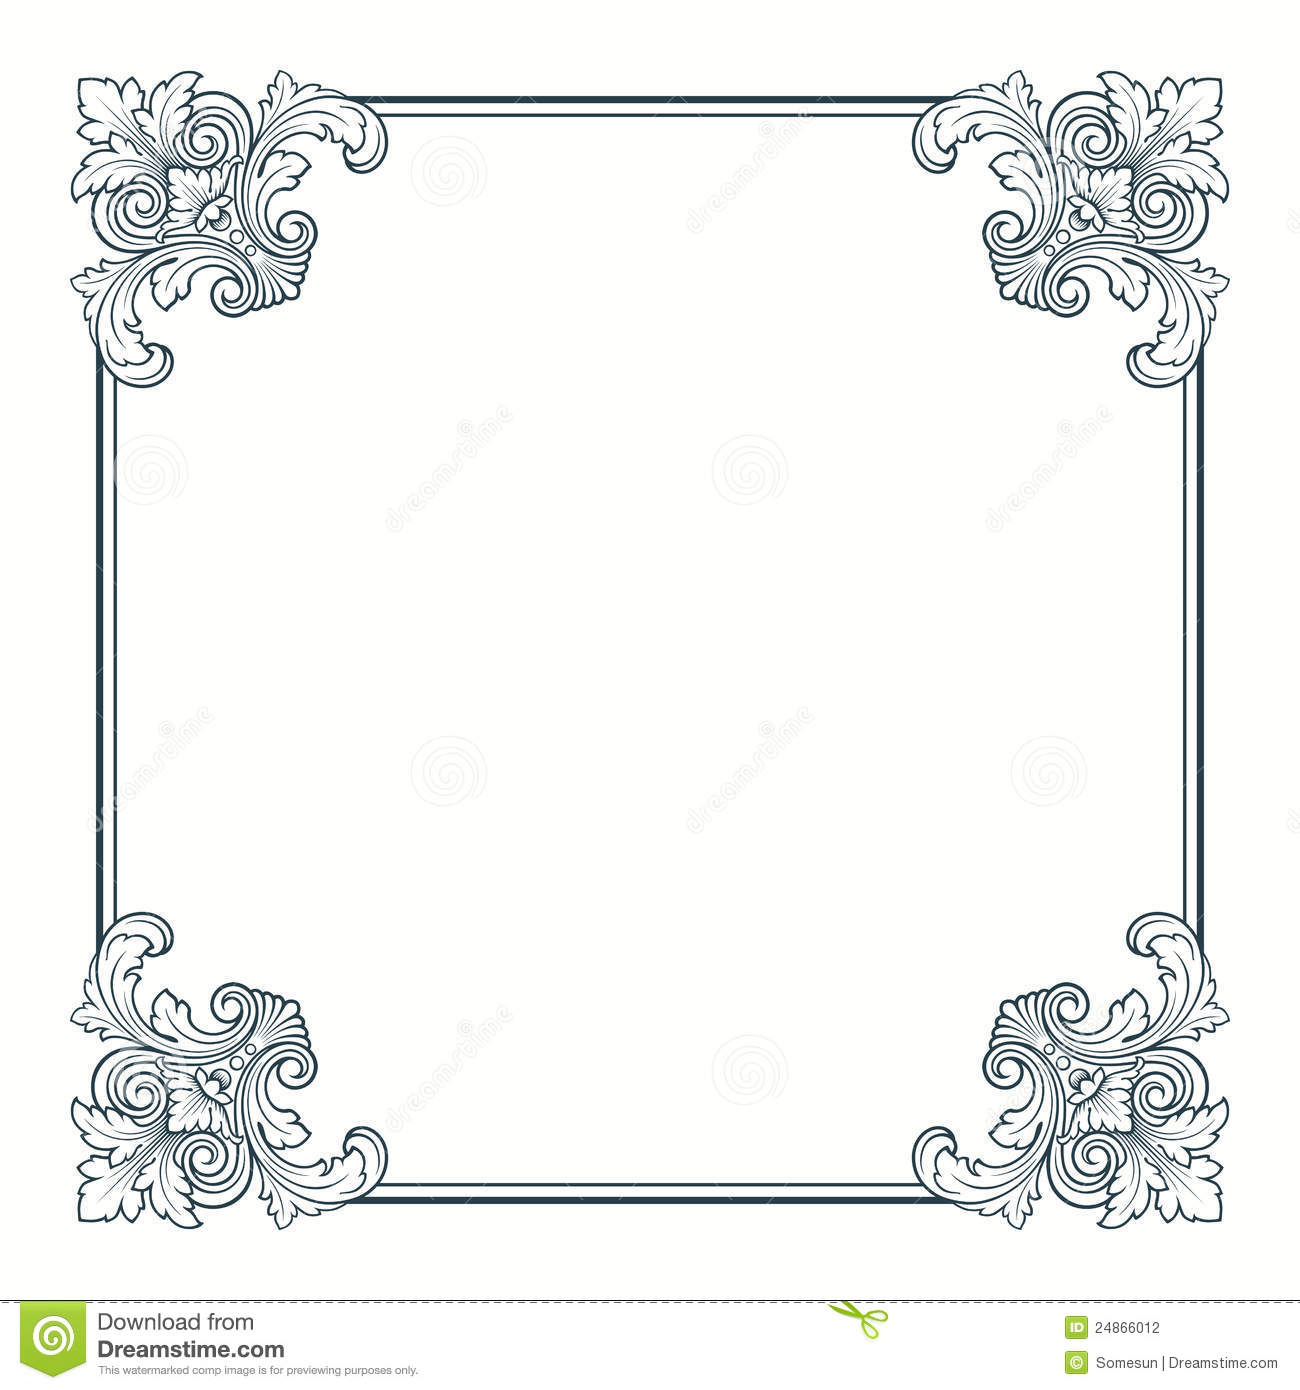 Vintage Borders and Frames Vectors